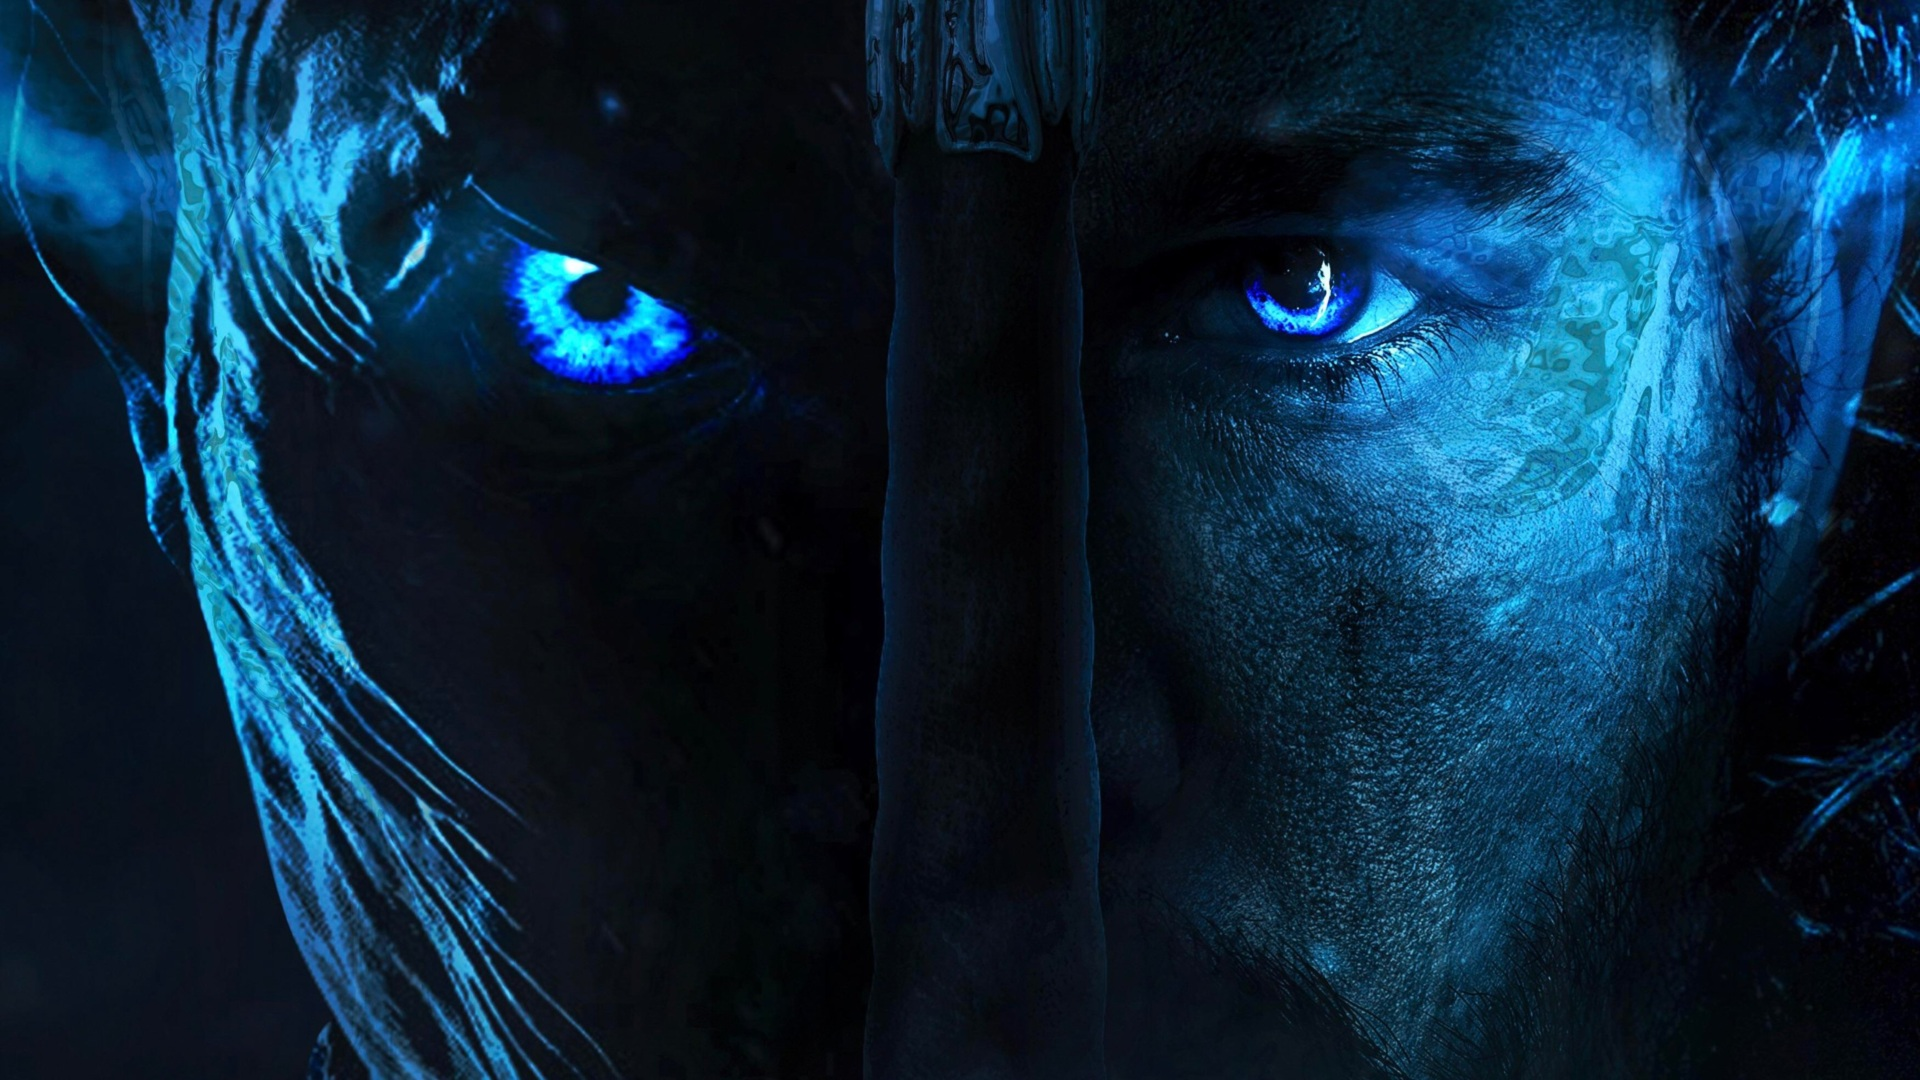 Game Of Thrones Season 8 Wallpapers